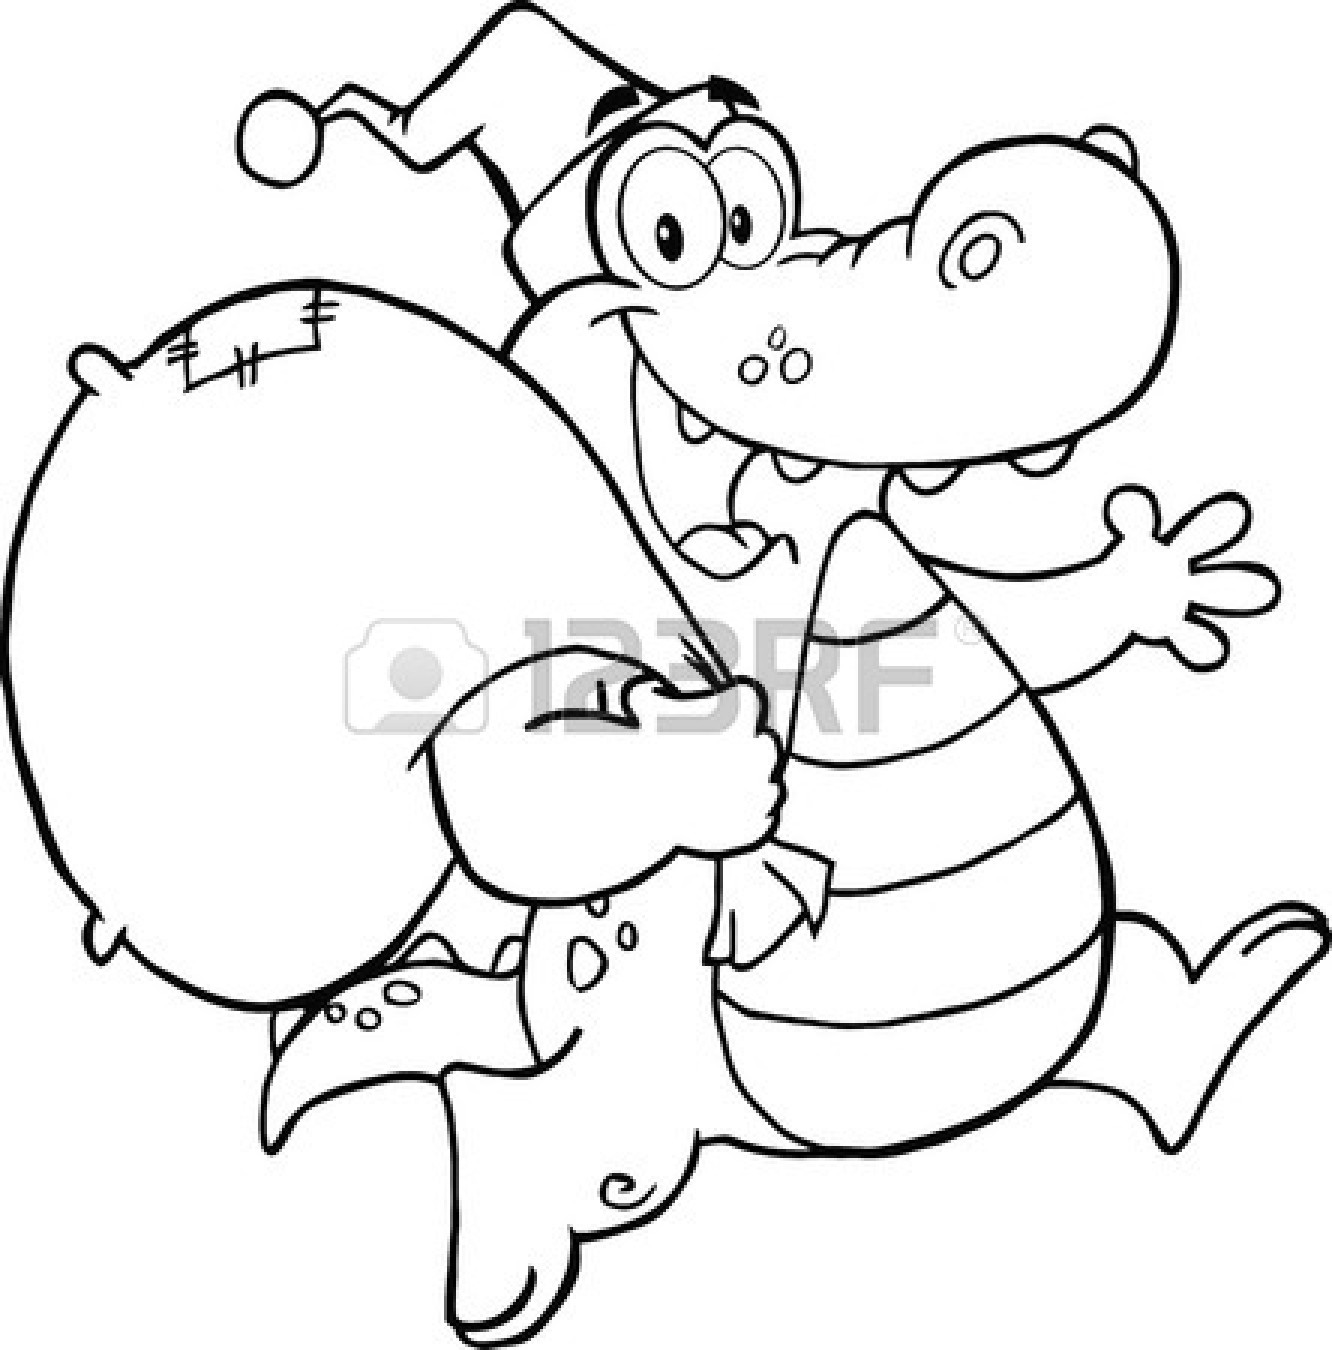 Crocodile Clipart Black And White | Clipart Panda - Free ... - photo#16